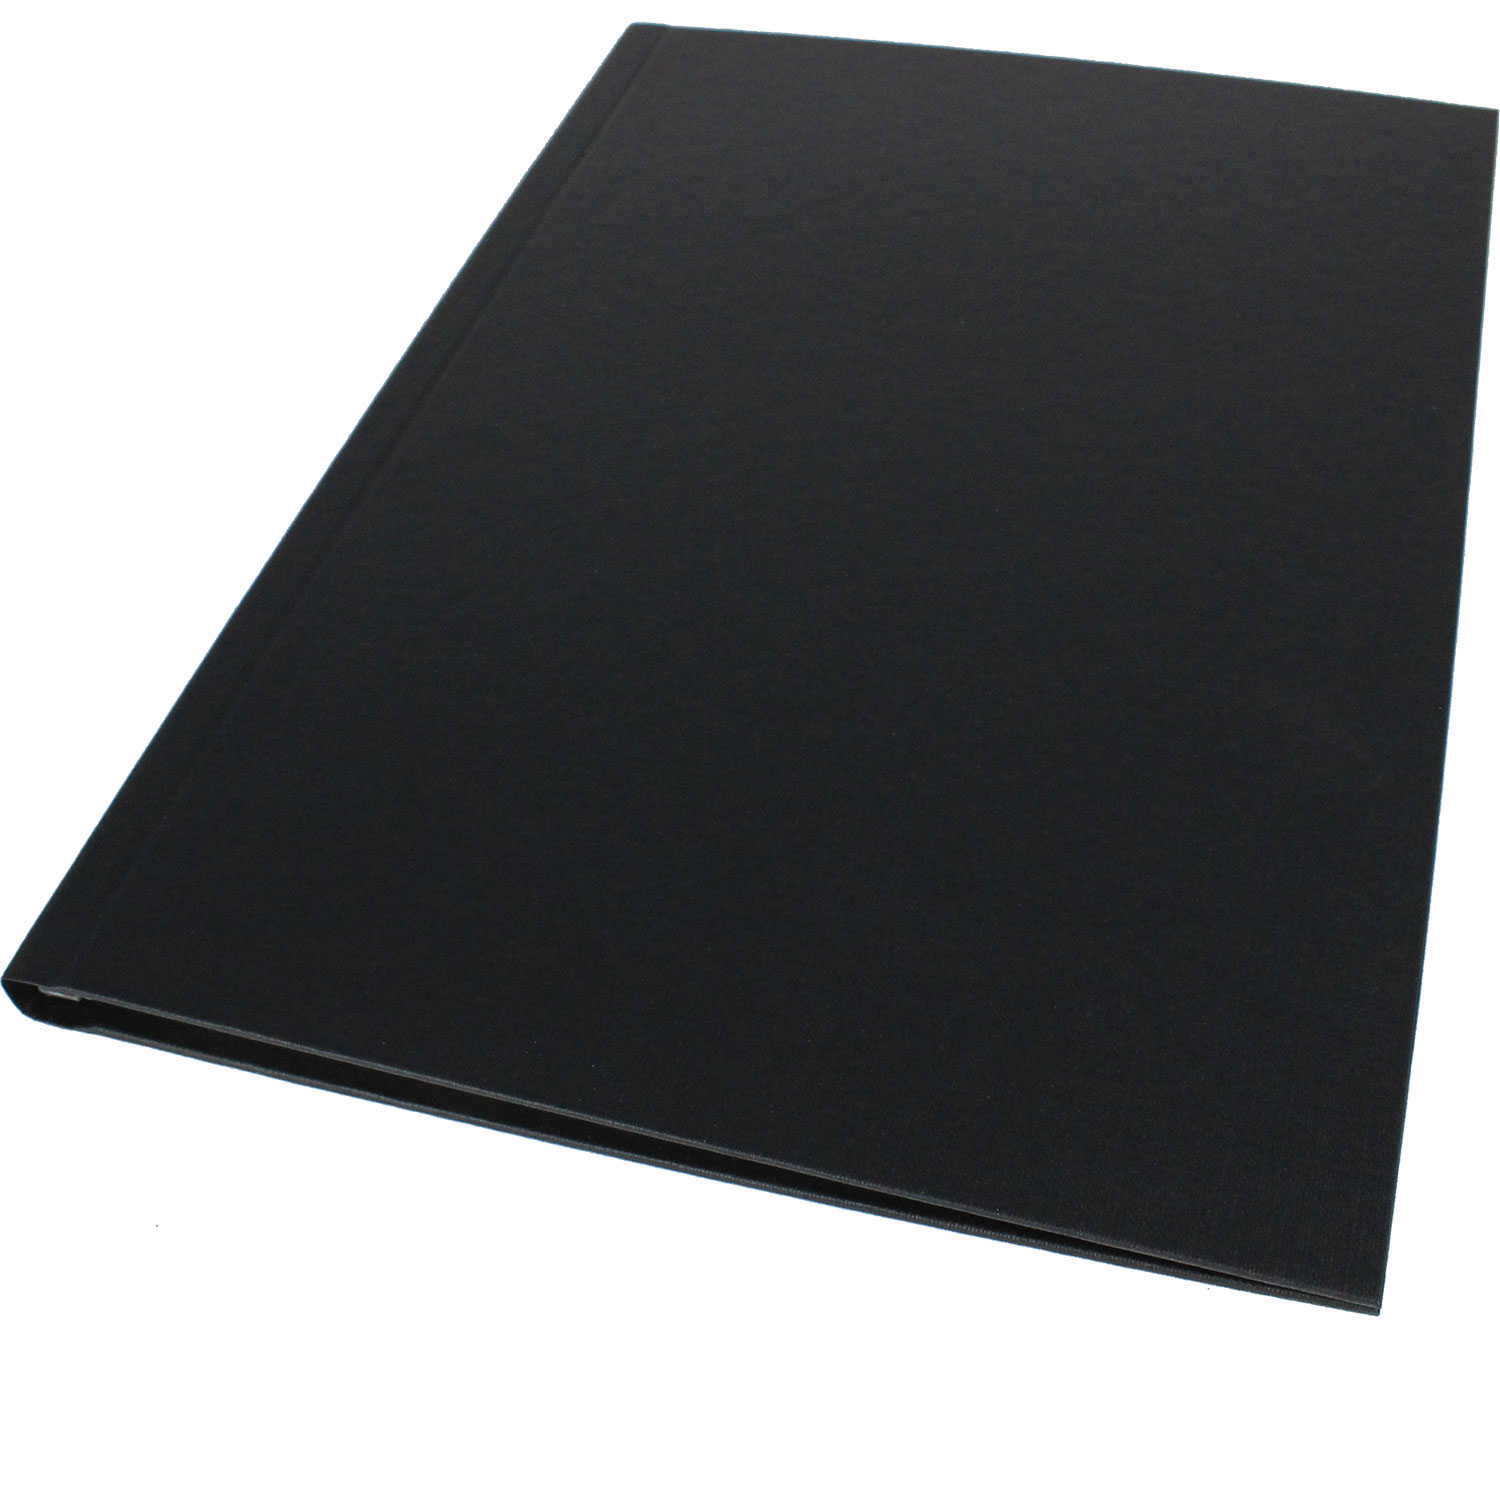 Impressbind A4 Hard Linen Binding Covers - Black 3.5mm - 28mm